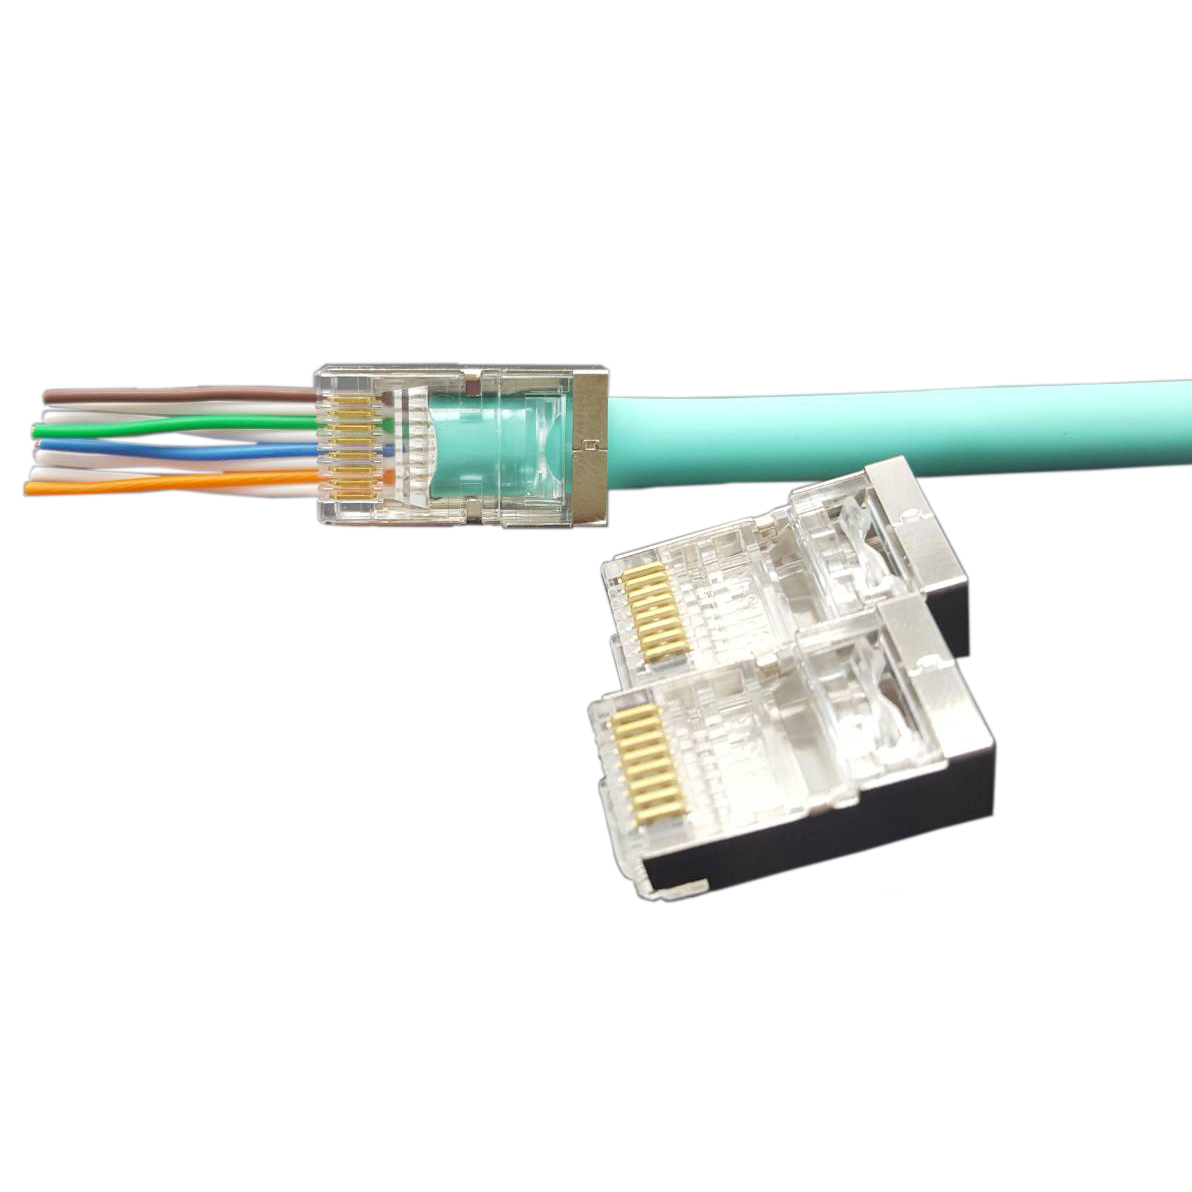 Cat6 STP Easy RJ45 Connector - Cat6 STP Easy Connector